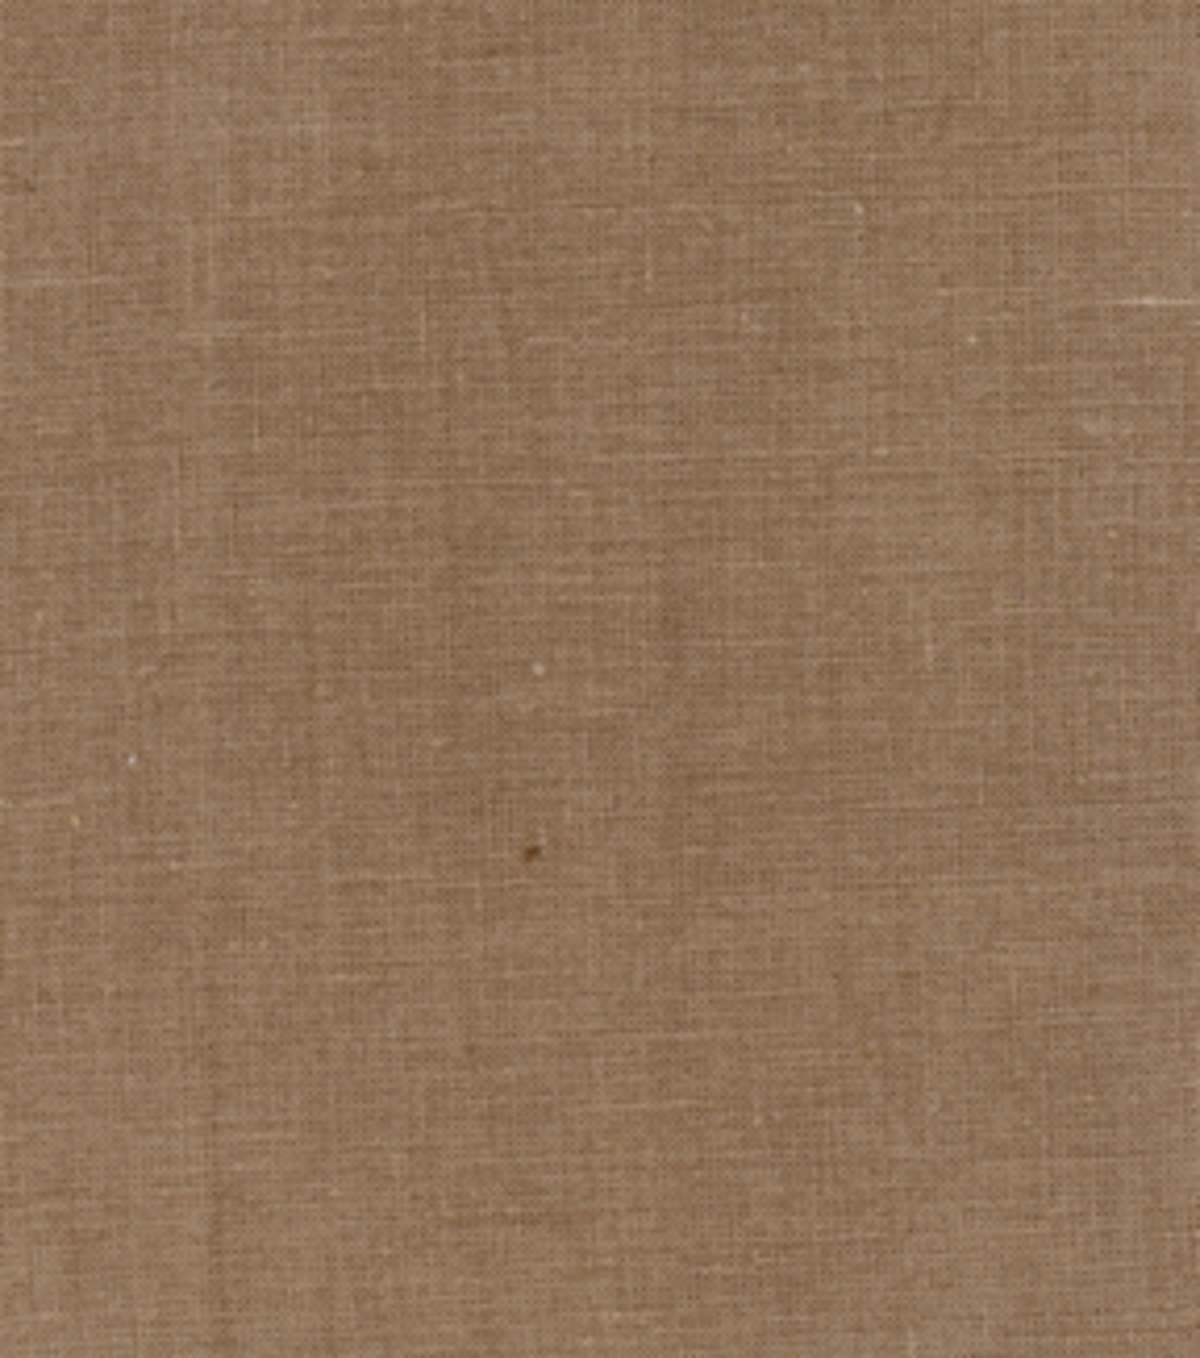 Home Decor 8\u0022x8\u0022 Fabric Swatch-Signature Series Rockford Linen Coffee